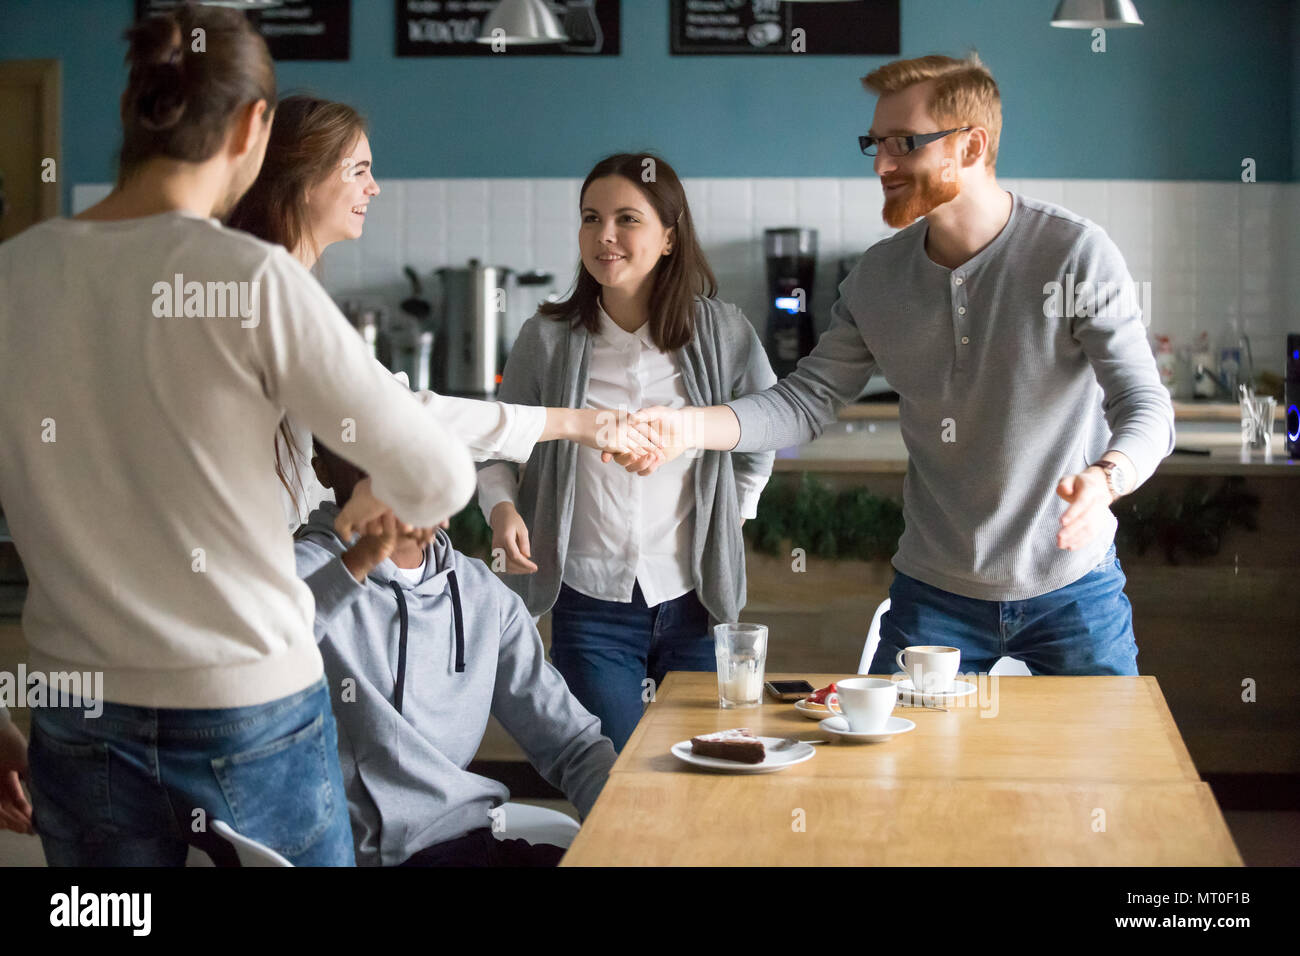 Millennial guy and girl handshaking getting acquainted coming at - Stock Image